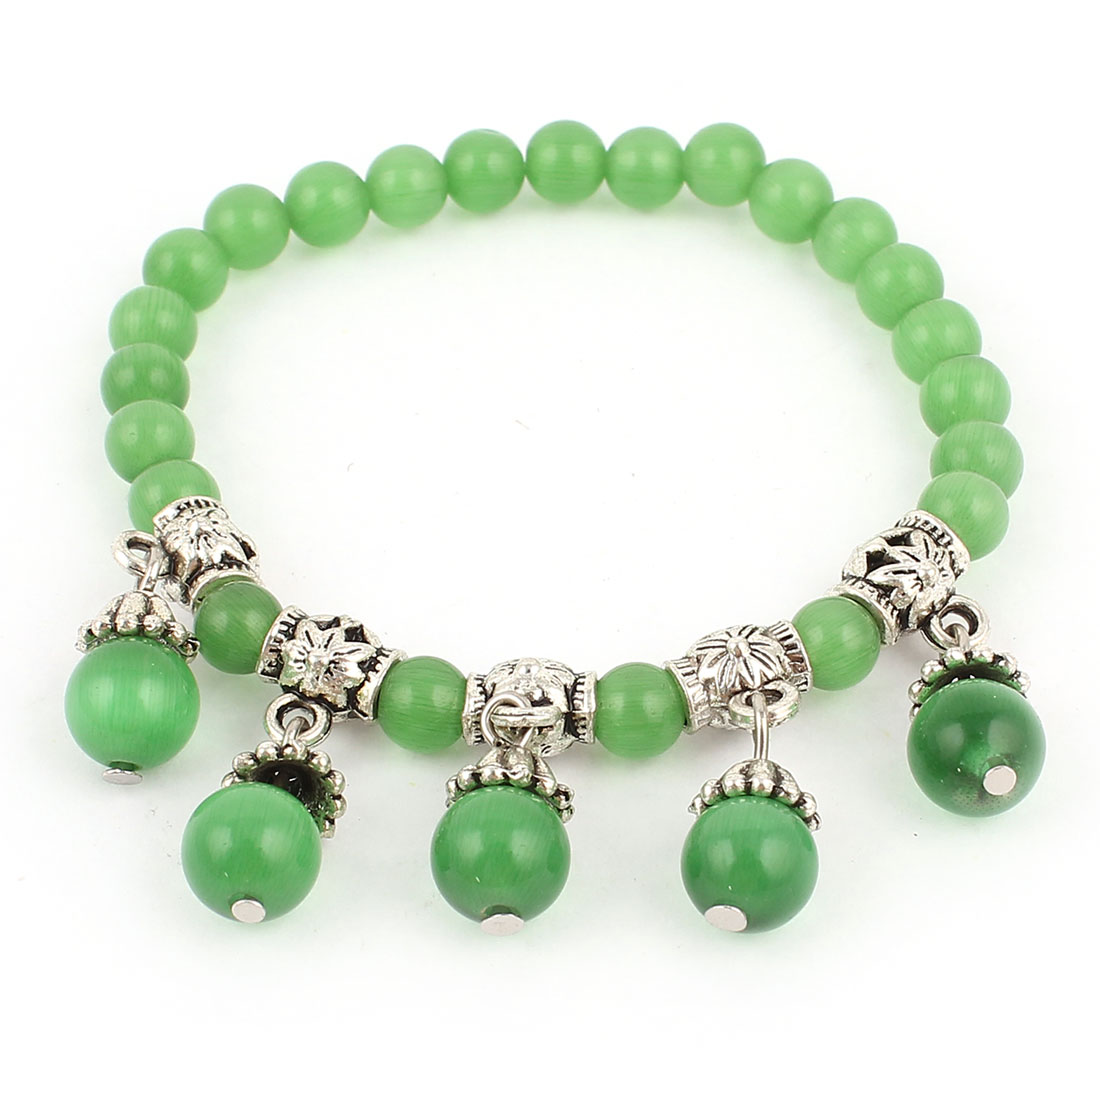 Lady Opal Bead Manmade Faceted Green Silver Tone Decor Stretchy Bracelet